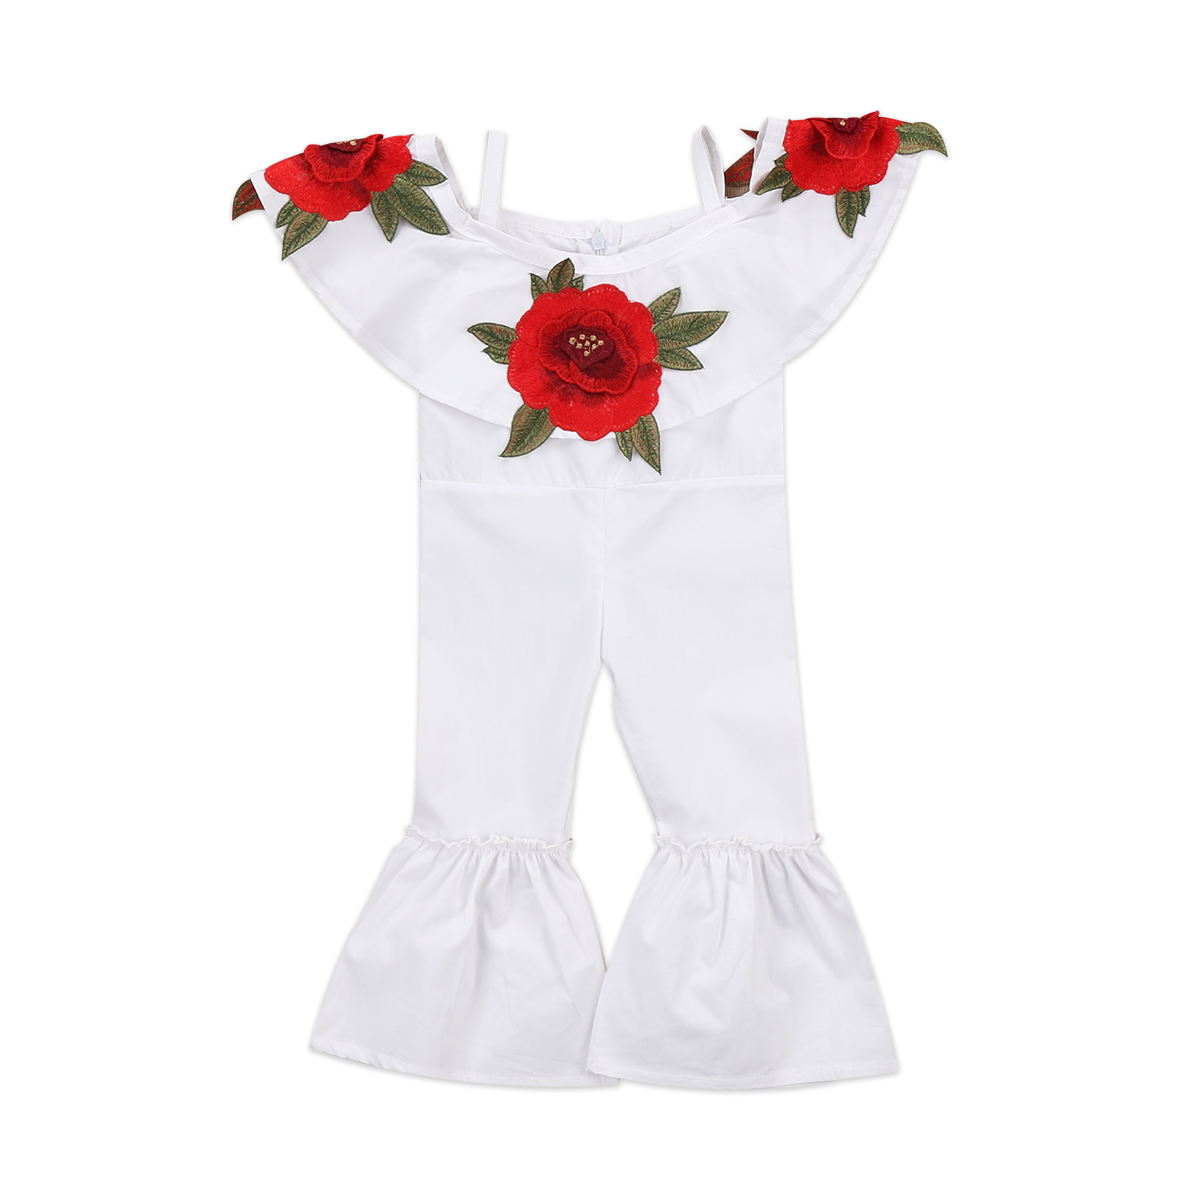 Kids Infant Baby Girls Clothing Romper Short Sleeve Flower Cute Jumpsuit Clothes Outfits Sunsuit Girl 2017 summer baby girl romper infant girls formal clothing dress cotton jumpsuit ropa bebe short sleeve newborn baby girl clothes